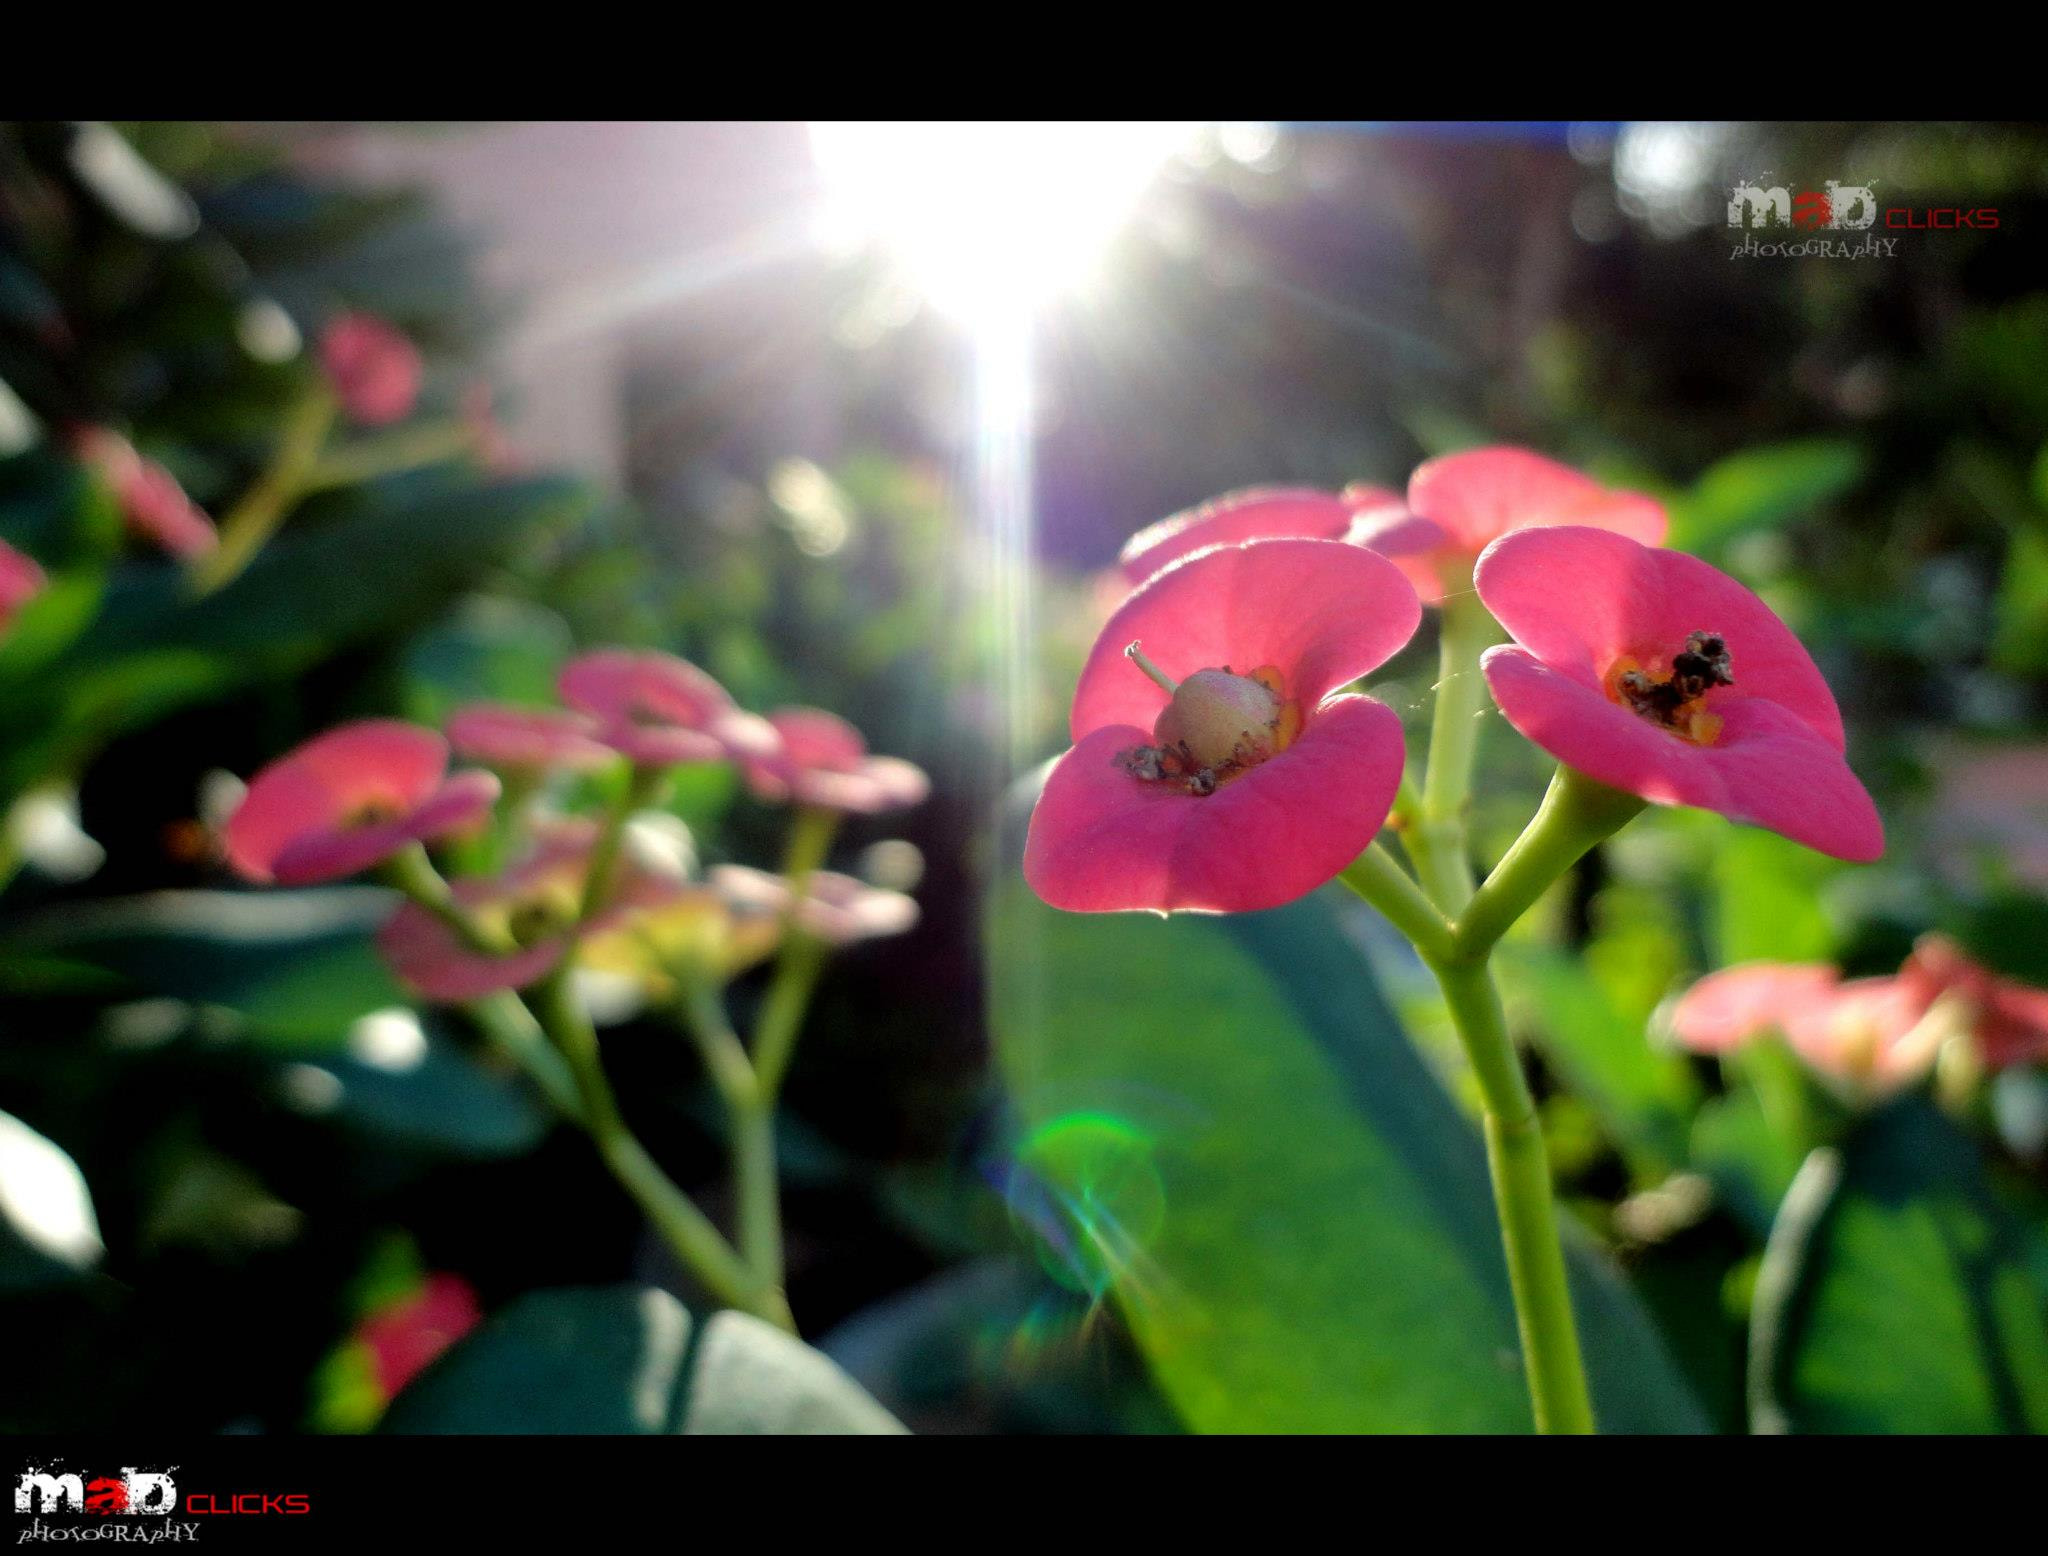 Photograph Blessed With Holly SUN by Athul Mk on 500px